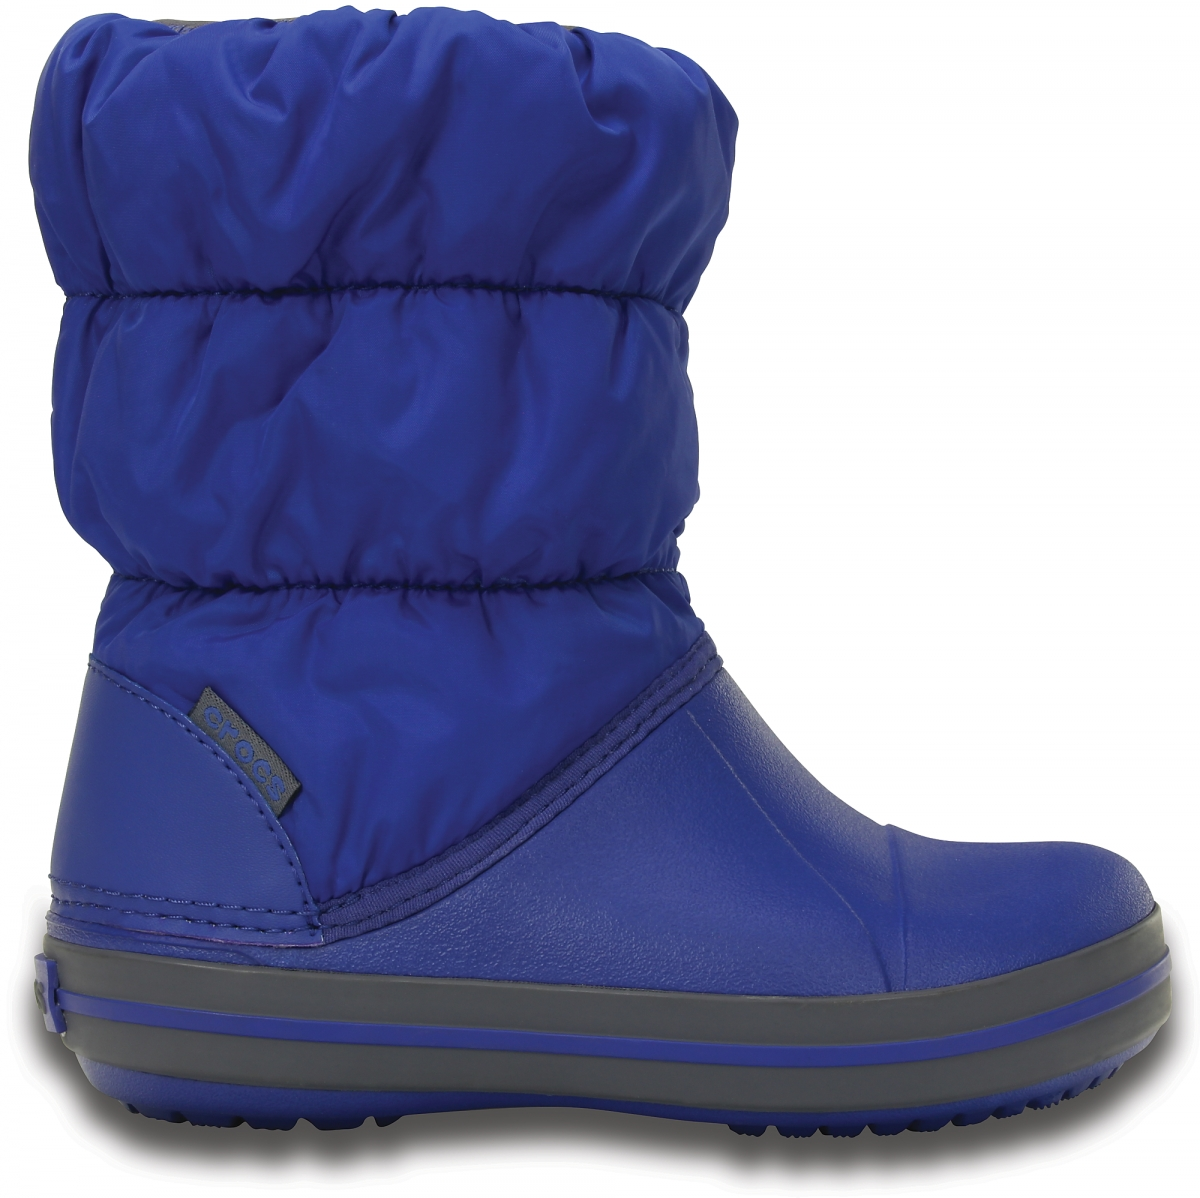 Crocs Winter Puff Boot Kids - Cerulean Blue/Light Grey, C10 (27-28)